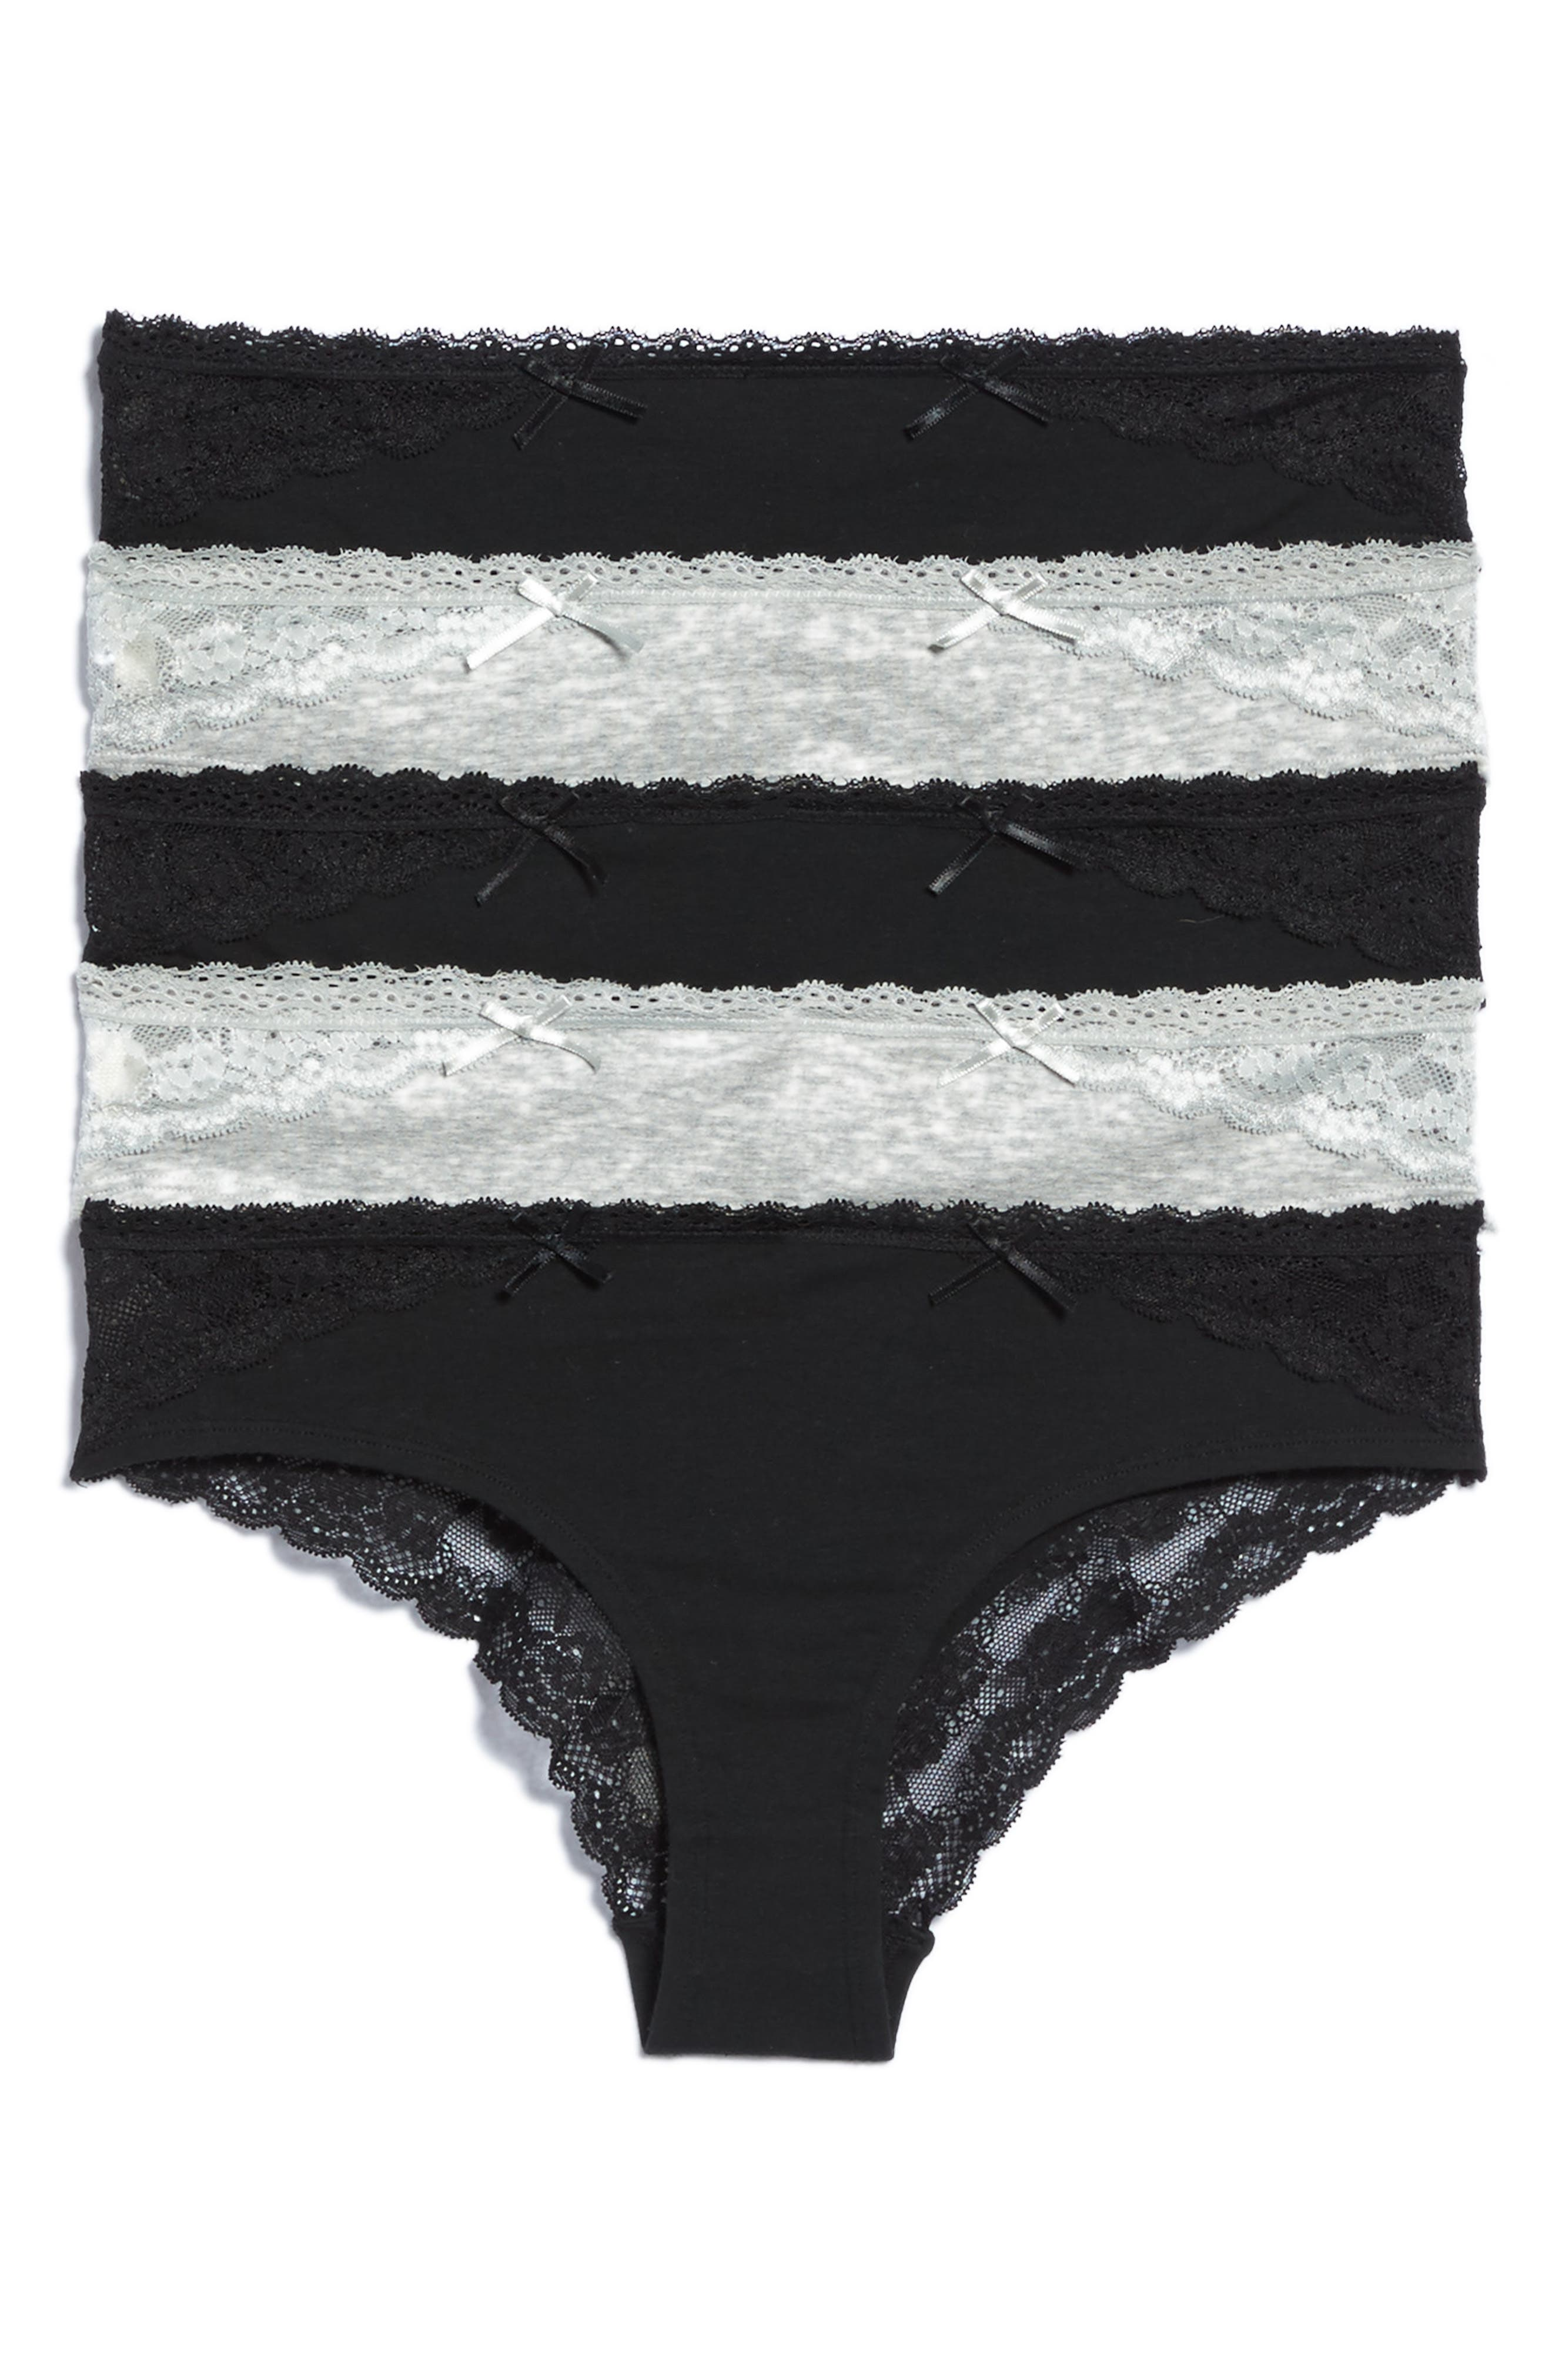 h.dew 5-Pack Stretch Cotton Bikini